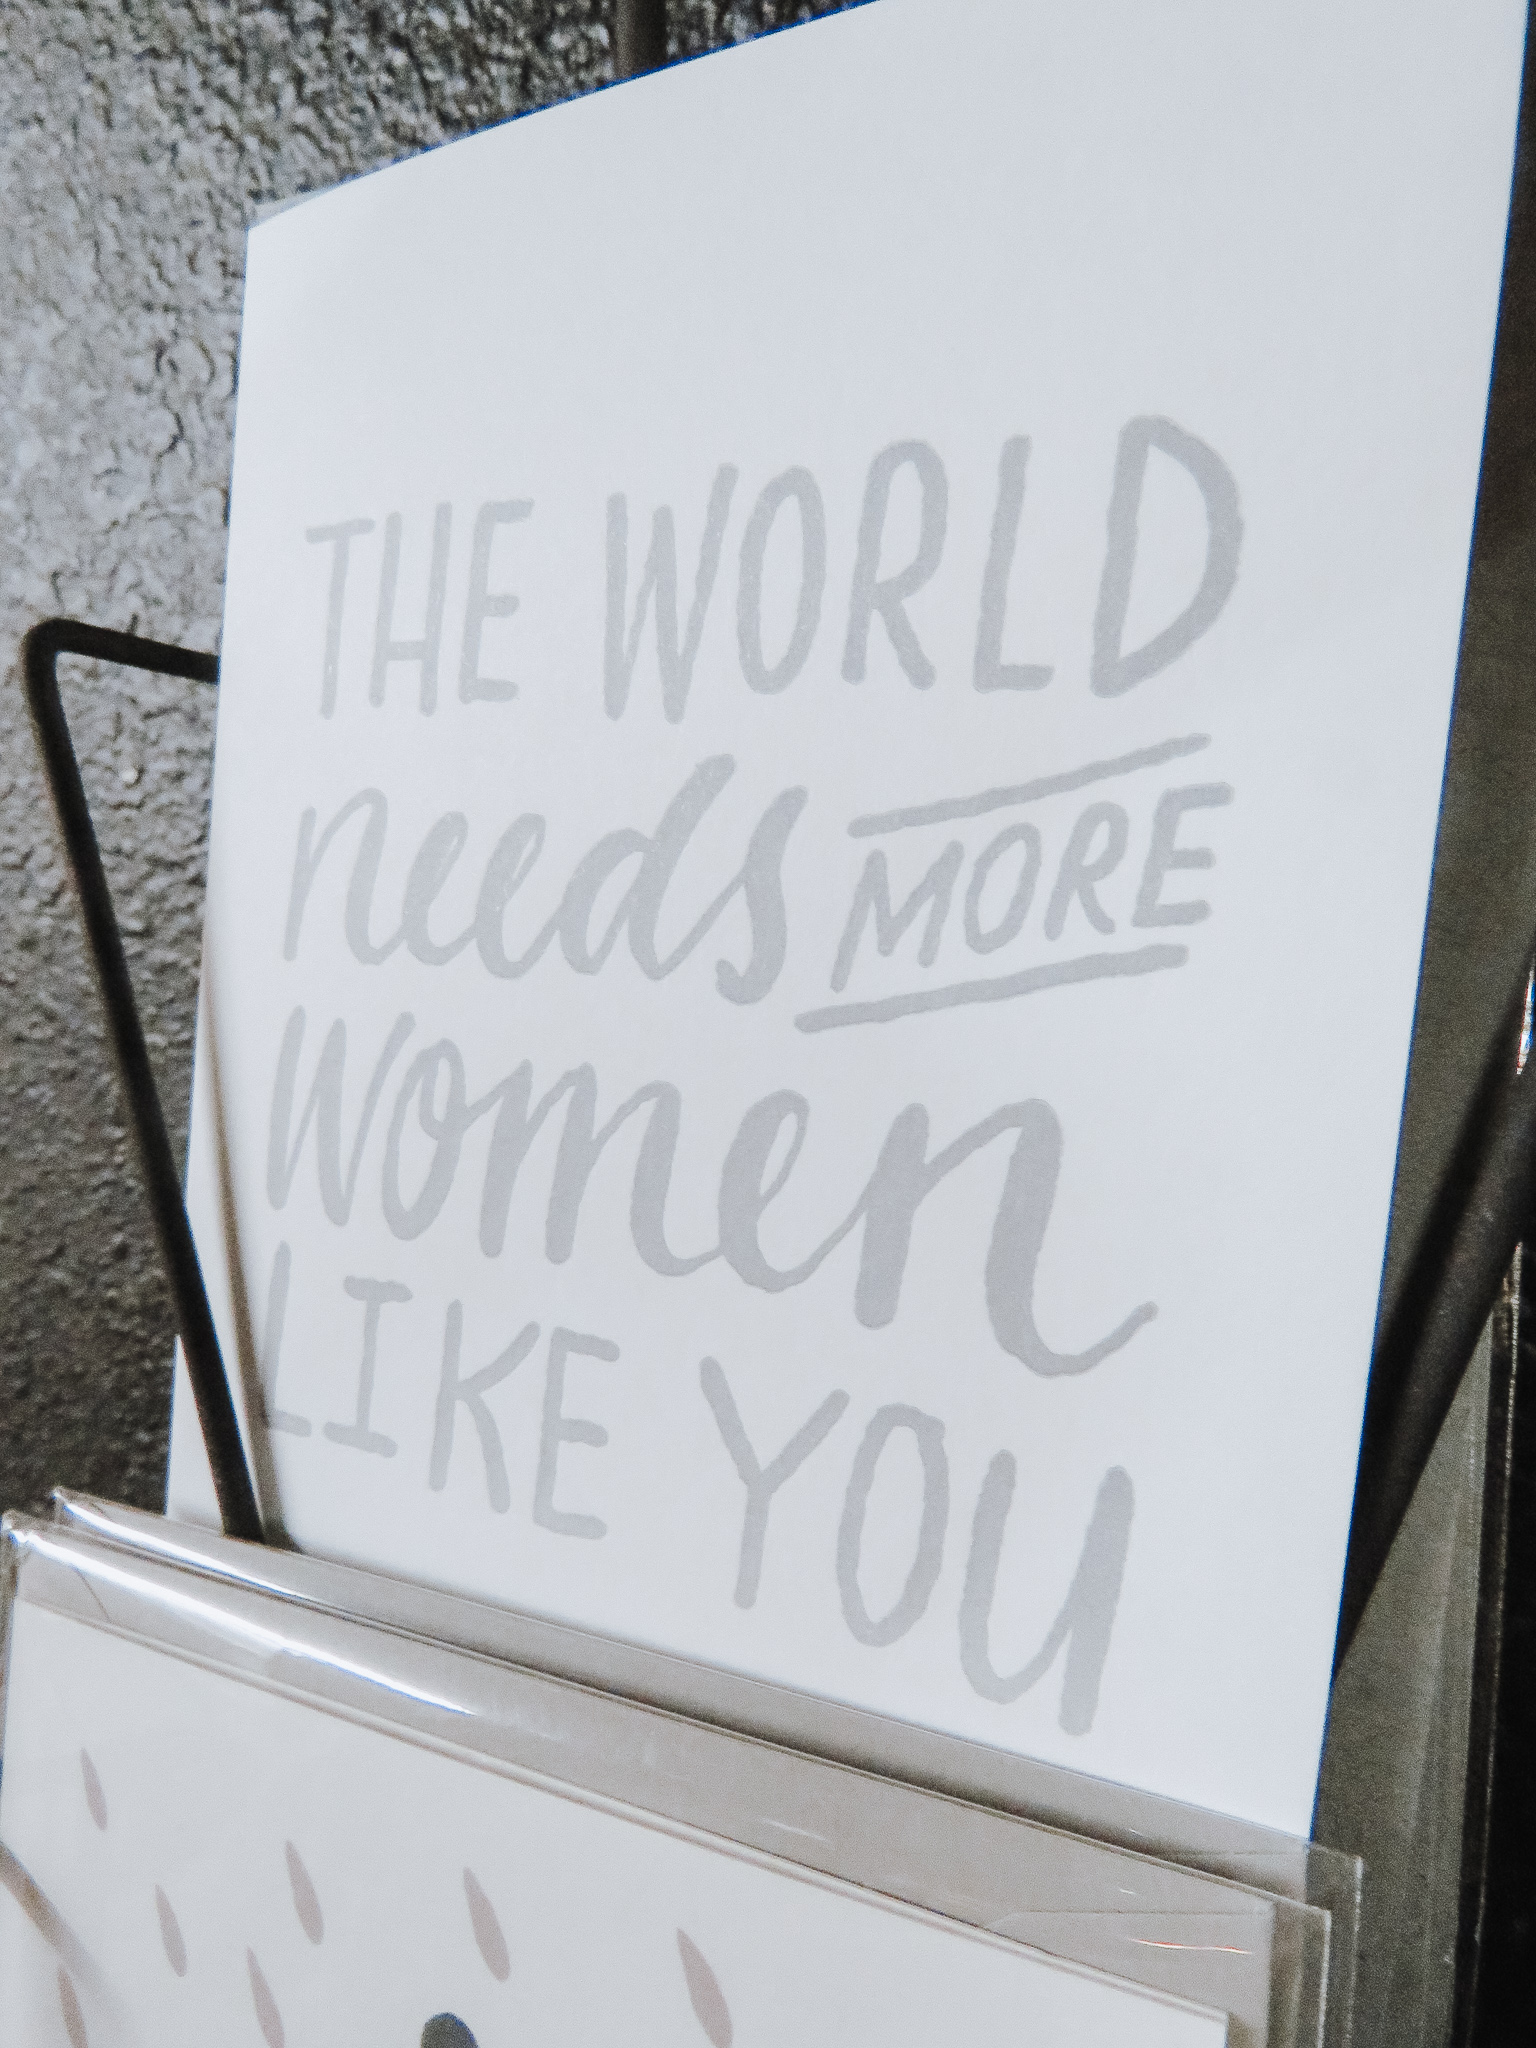 Say Something - Several of our vendors carry handmade and letter-pressed cards for every occasion. Find the perfect one for your loved one.